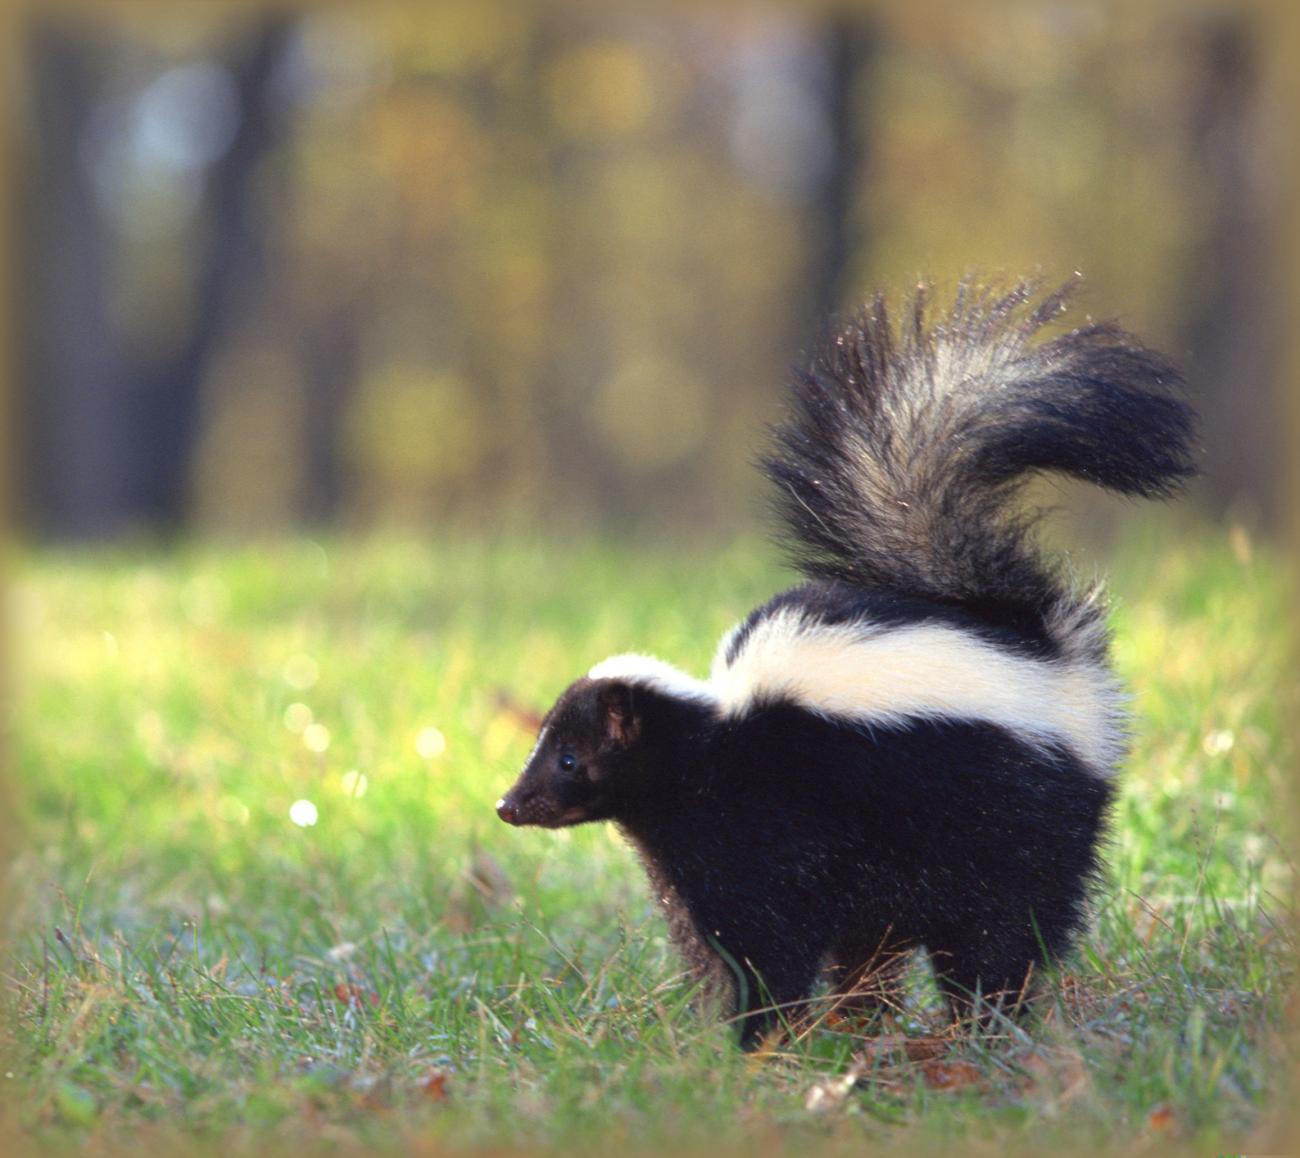 Skunks How to Identify and Get Rid of Skunks in the Garden The